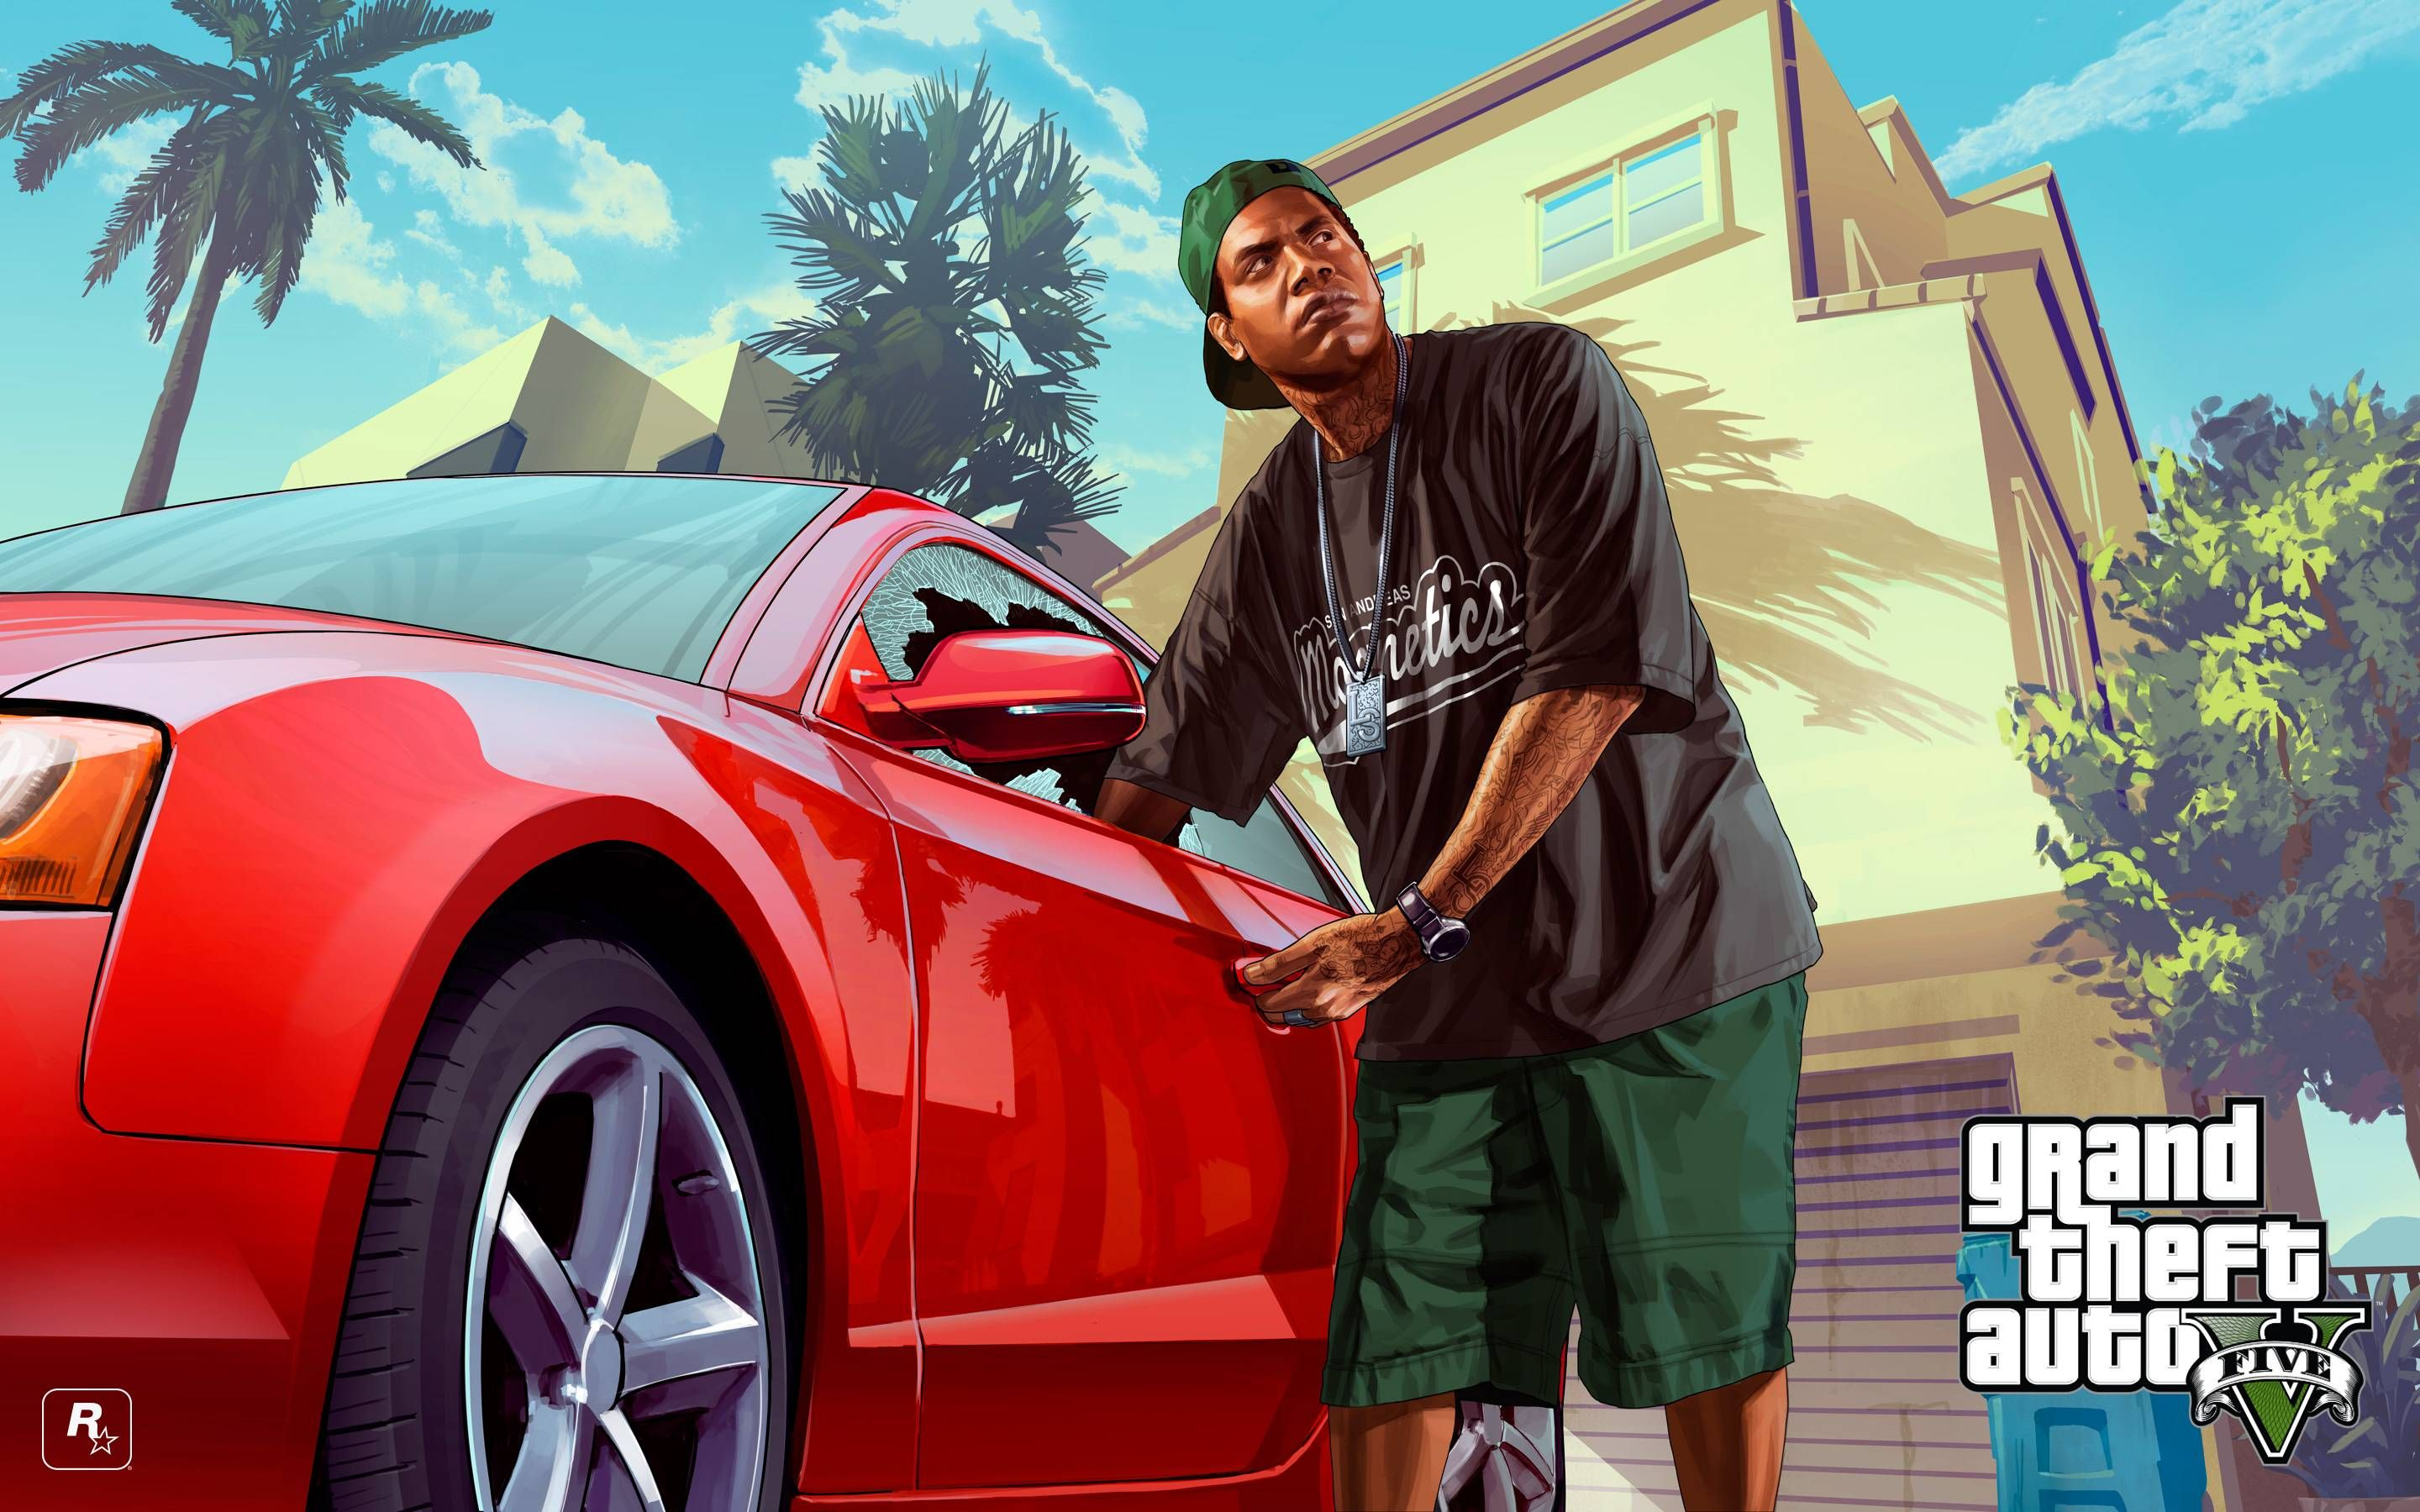 Gta wallpapers group hd wallpapers pinterest gta hd wallpaper gta wallpapers group voltagebd Images